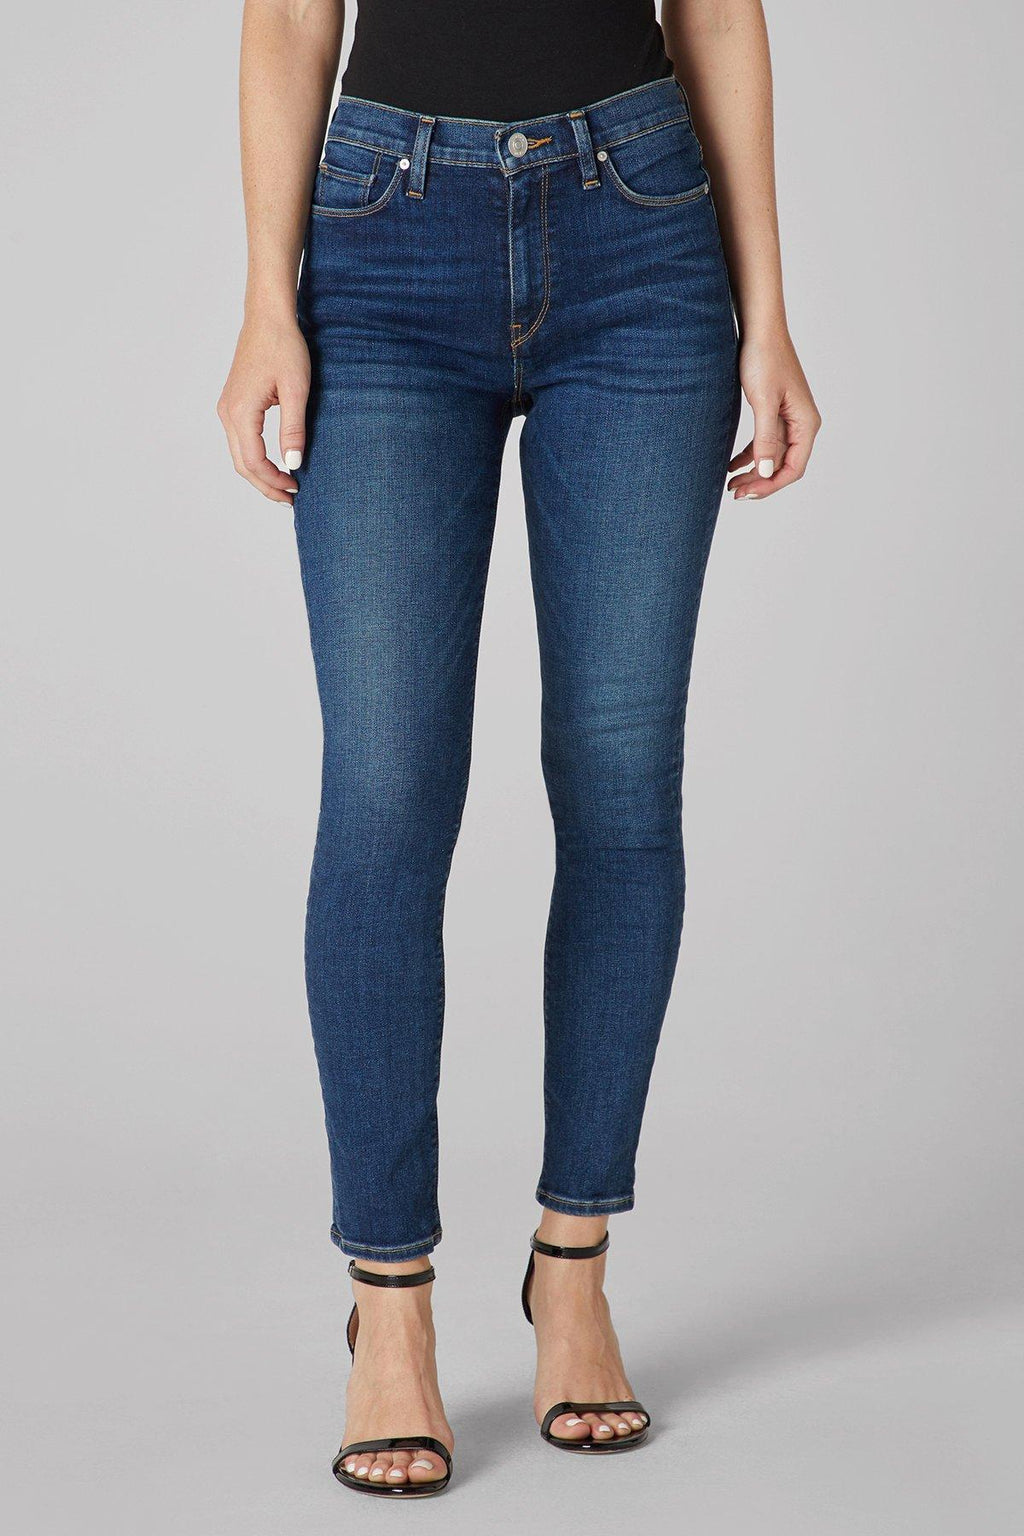 Hudson Barbara High-Rise Super Skinny Ankle Jean - 13 Hub Lane   |